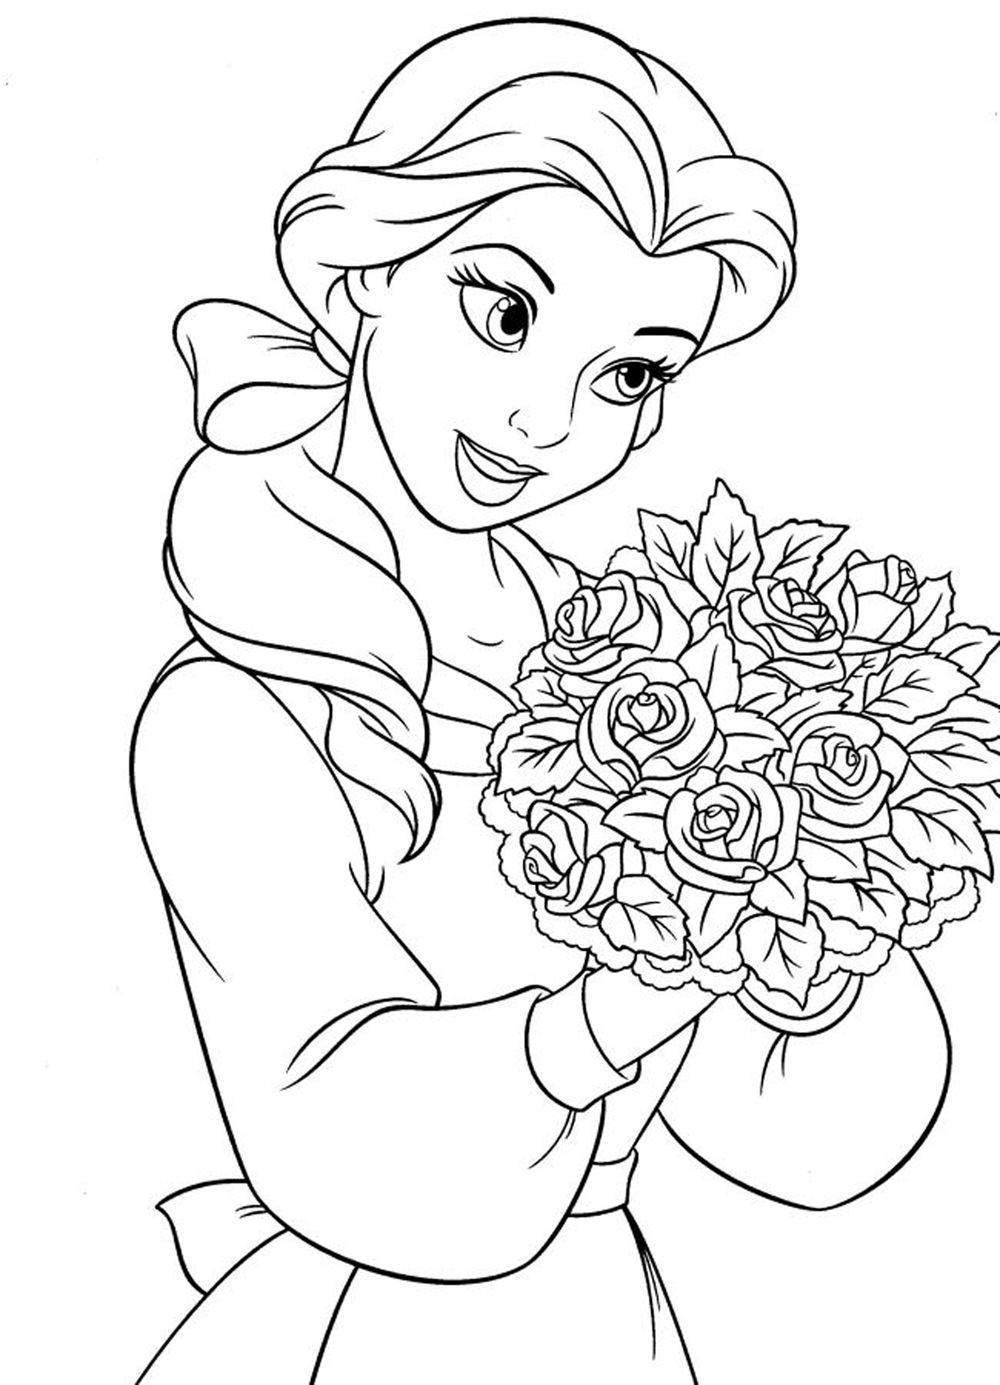 free coloring book pages disney - photo#26